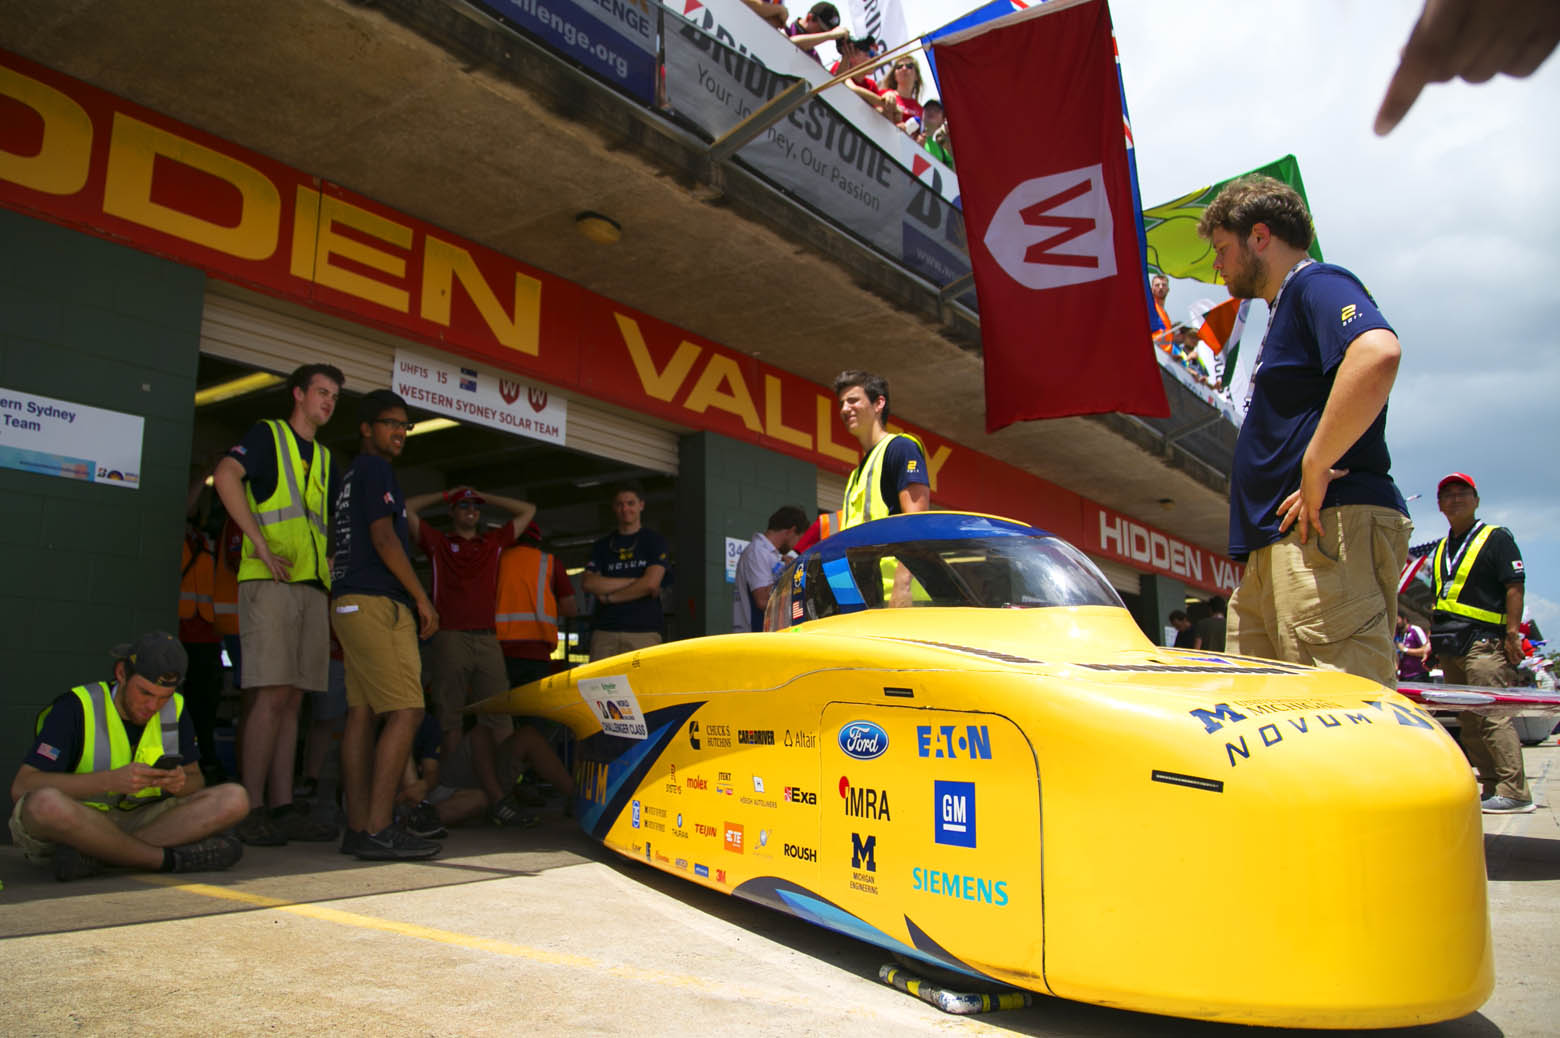 Novum leaves the team's garage and onto the pit row to run the hot lap.